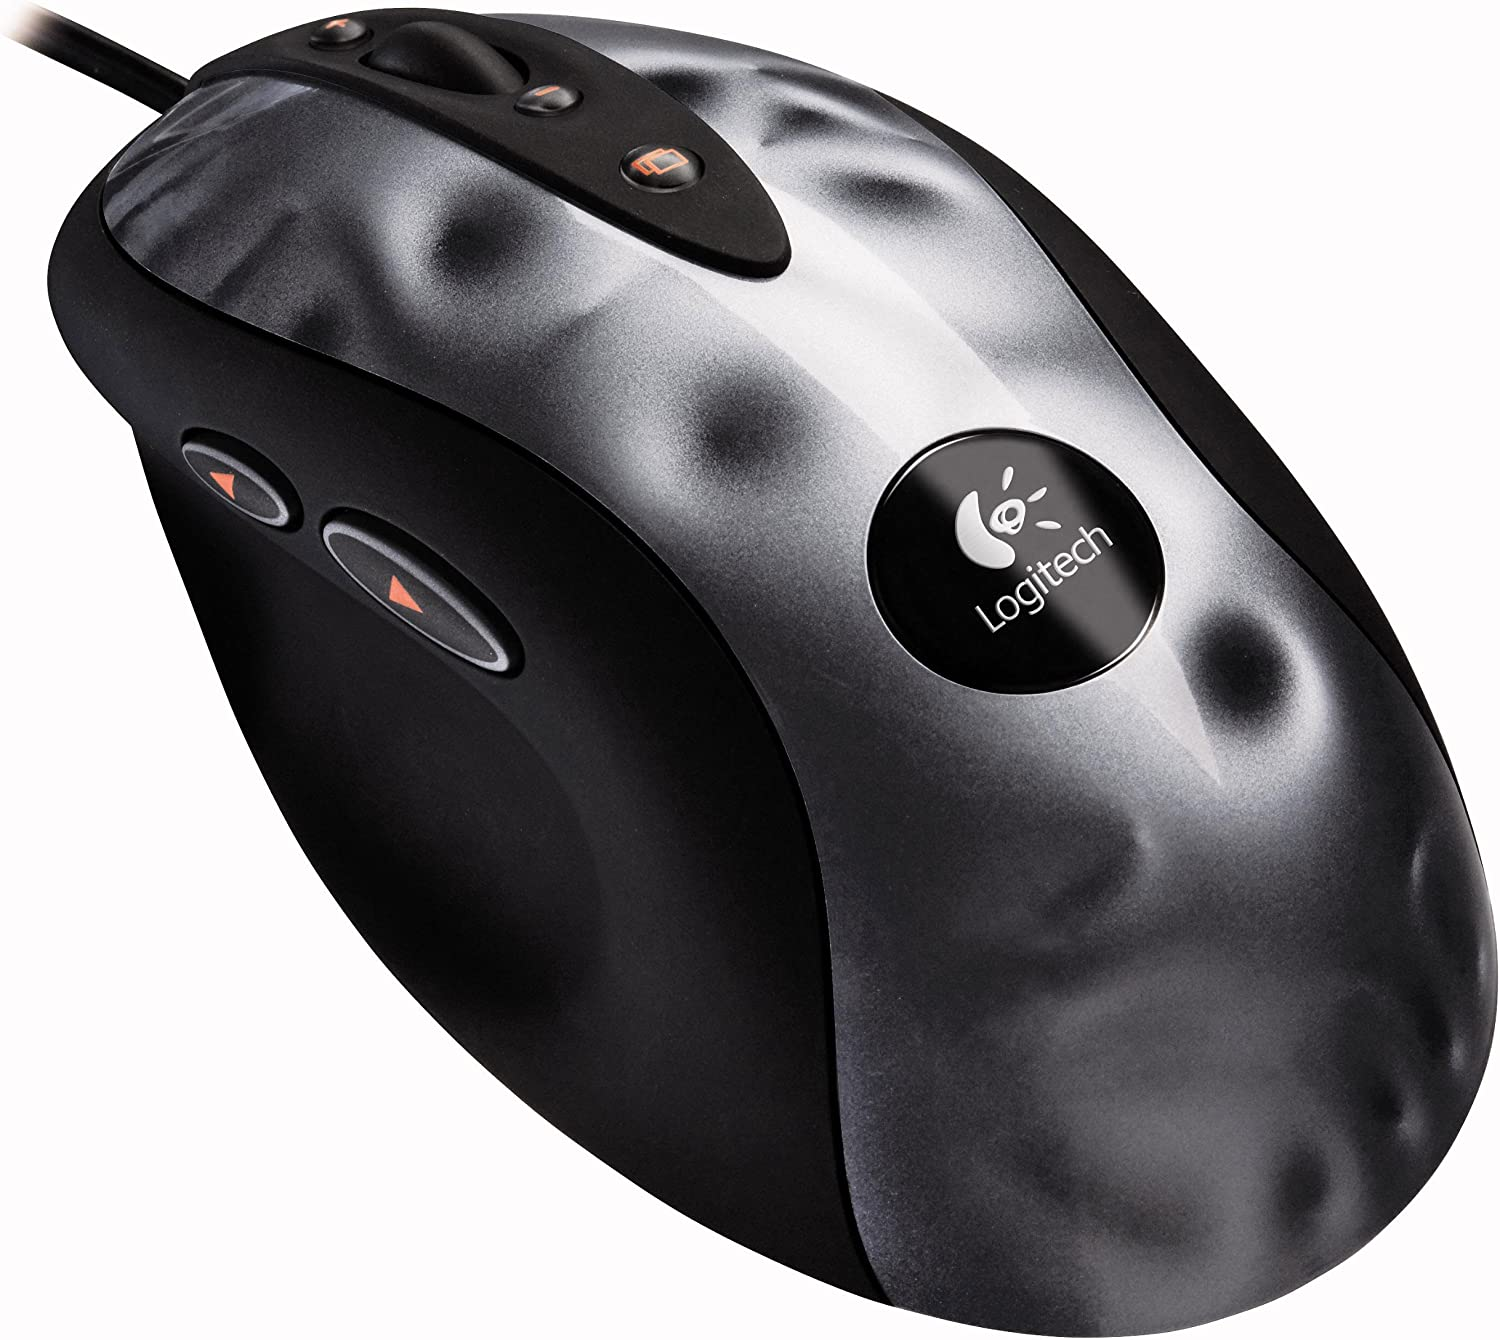 MX 518 Logitech MX518 High Performance 1800dpi Optical Gaming Mouse NEW